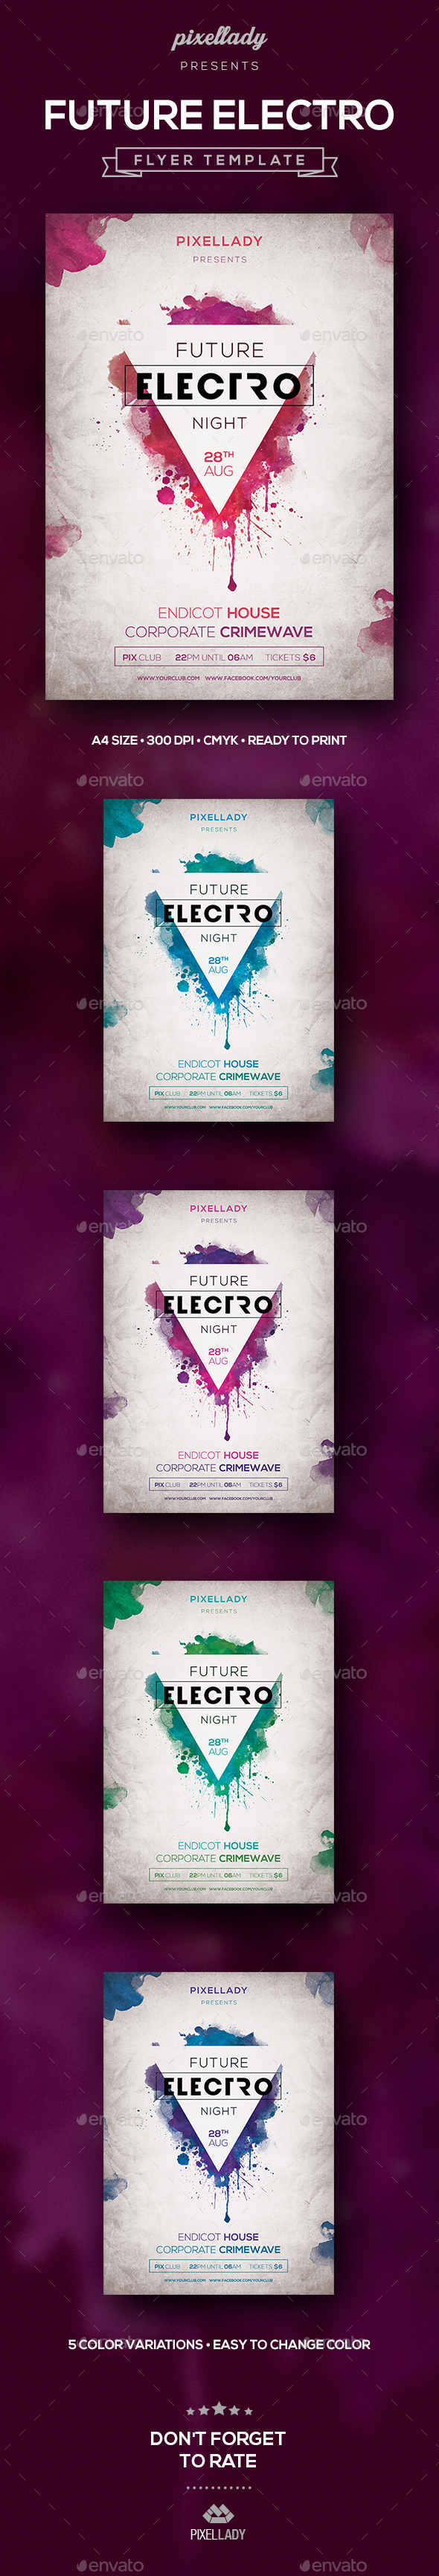 Future Electro Flyer - Flyers Print Templates